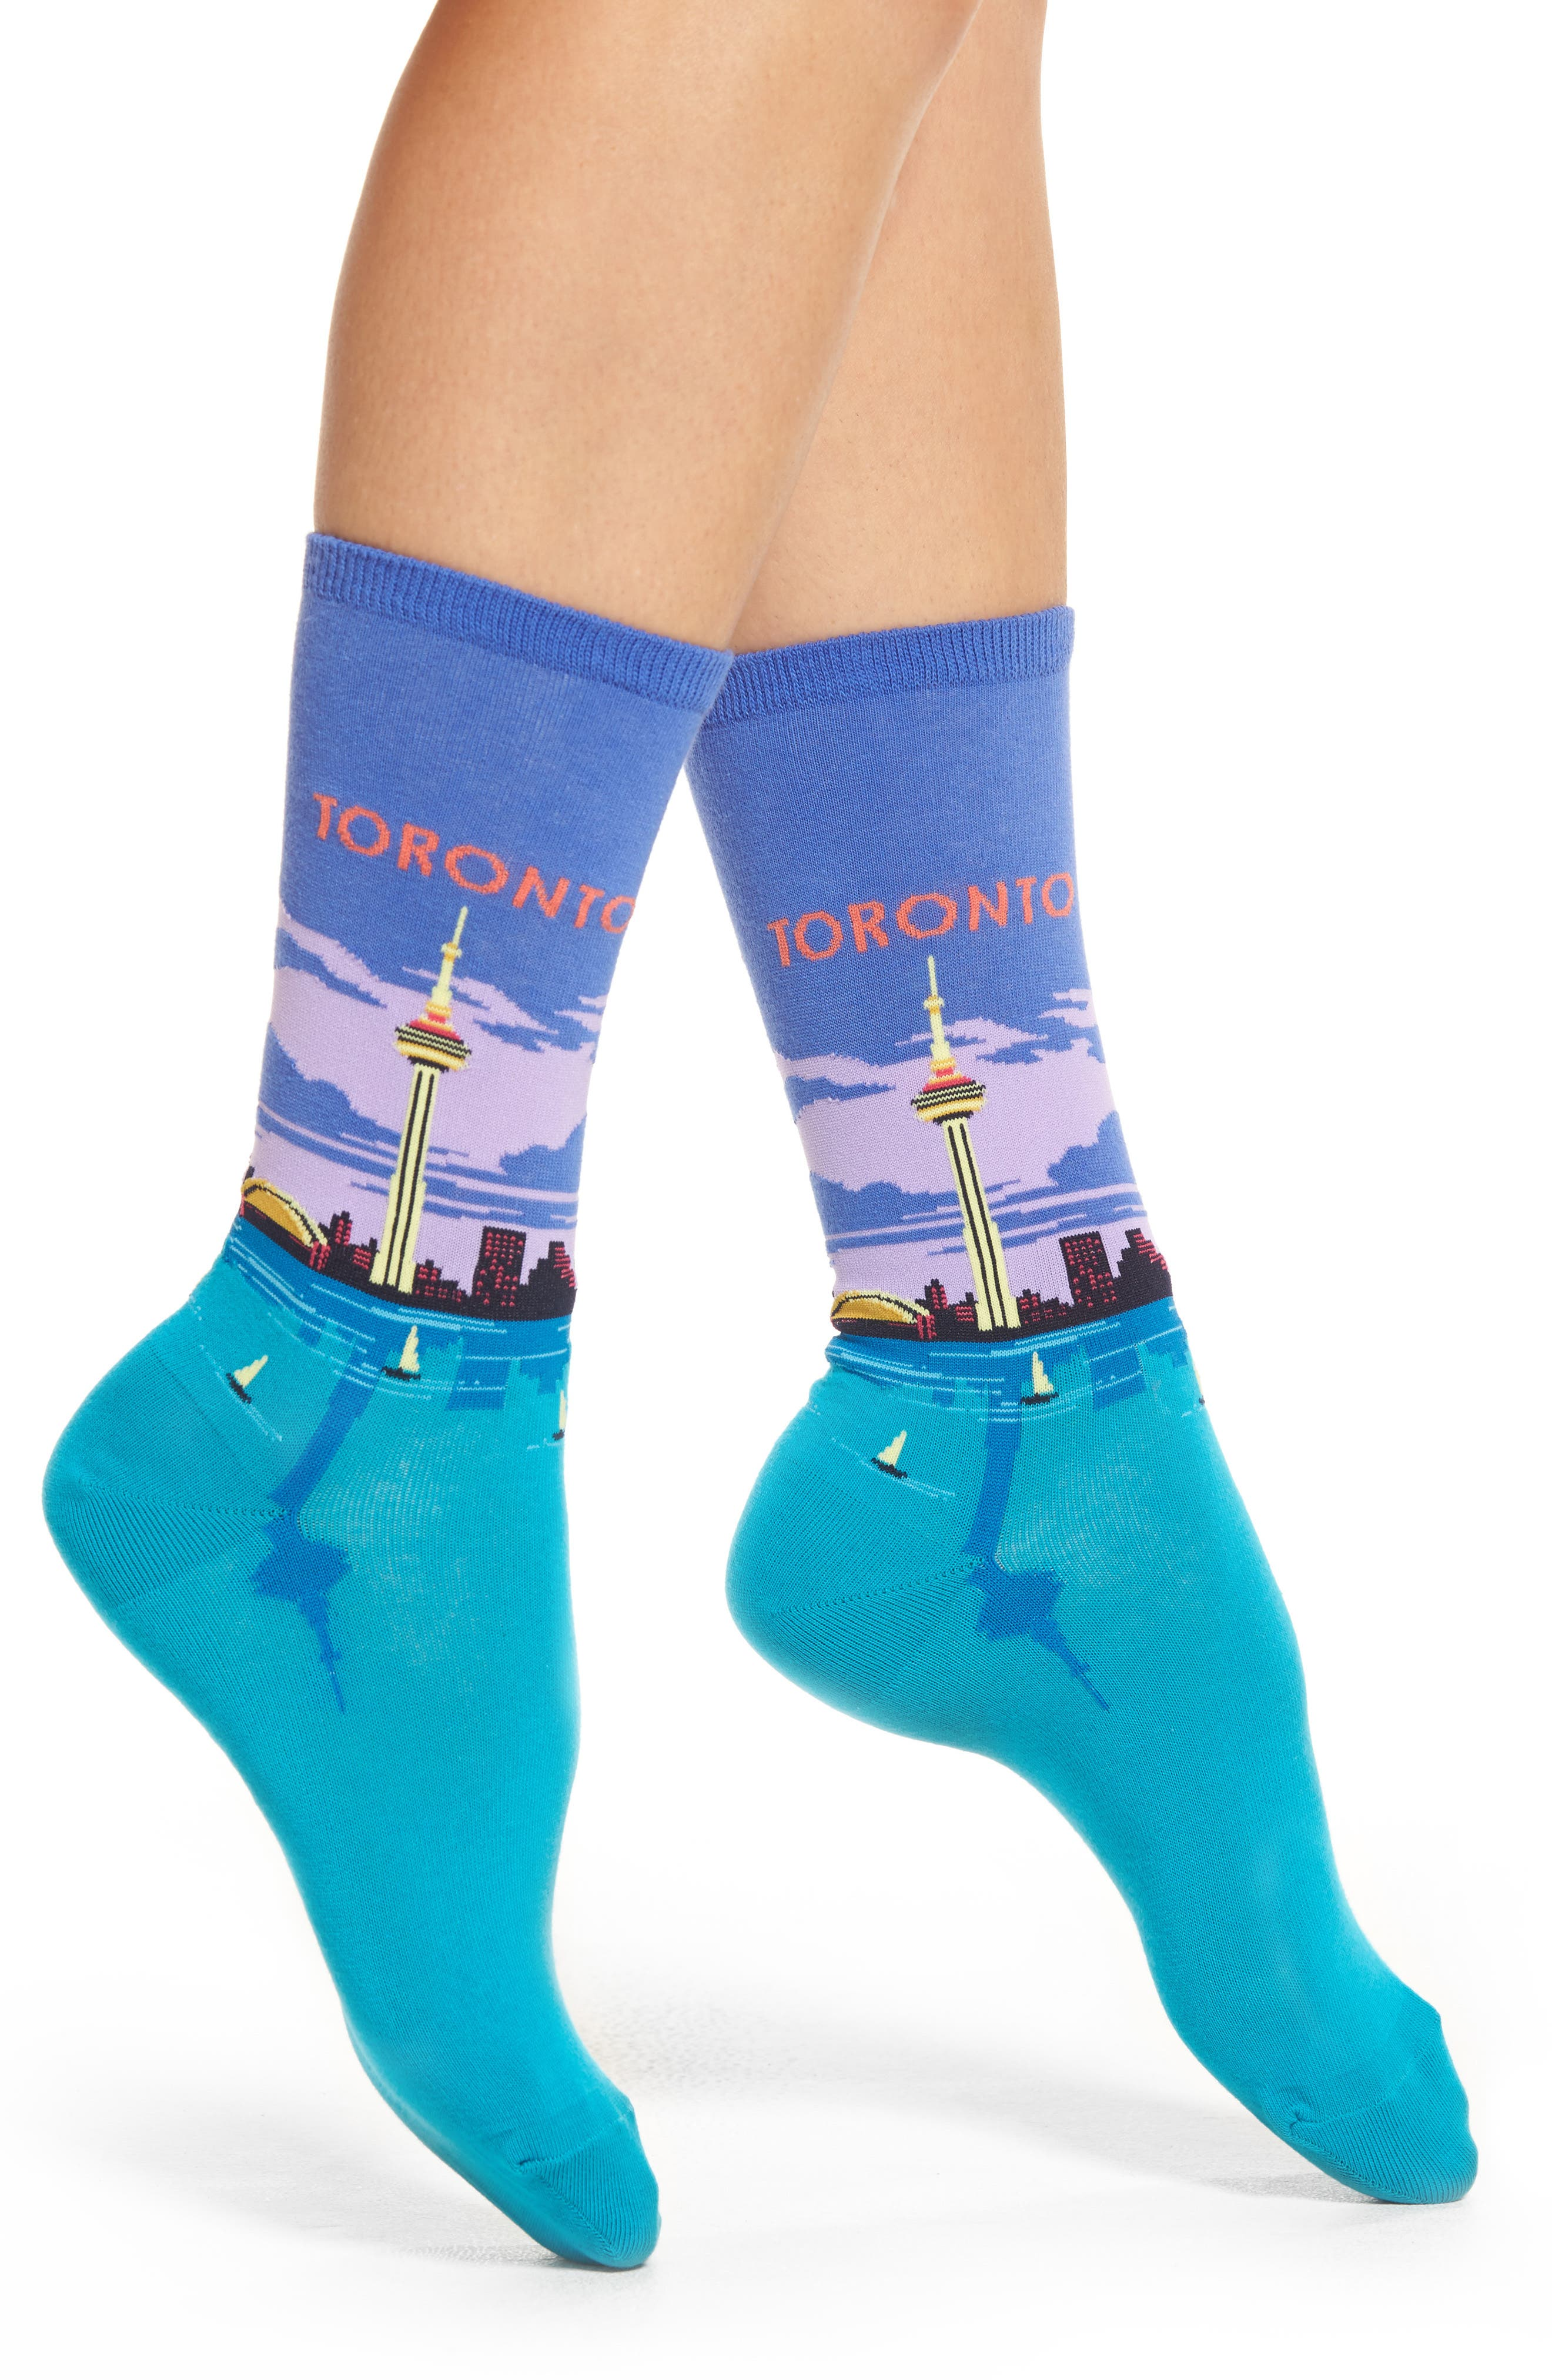 Main Image - Hot Sox Toronto Crew Socks (3 for $15)